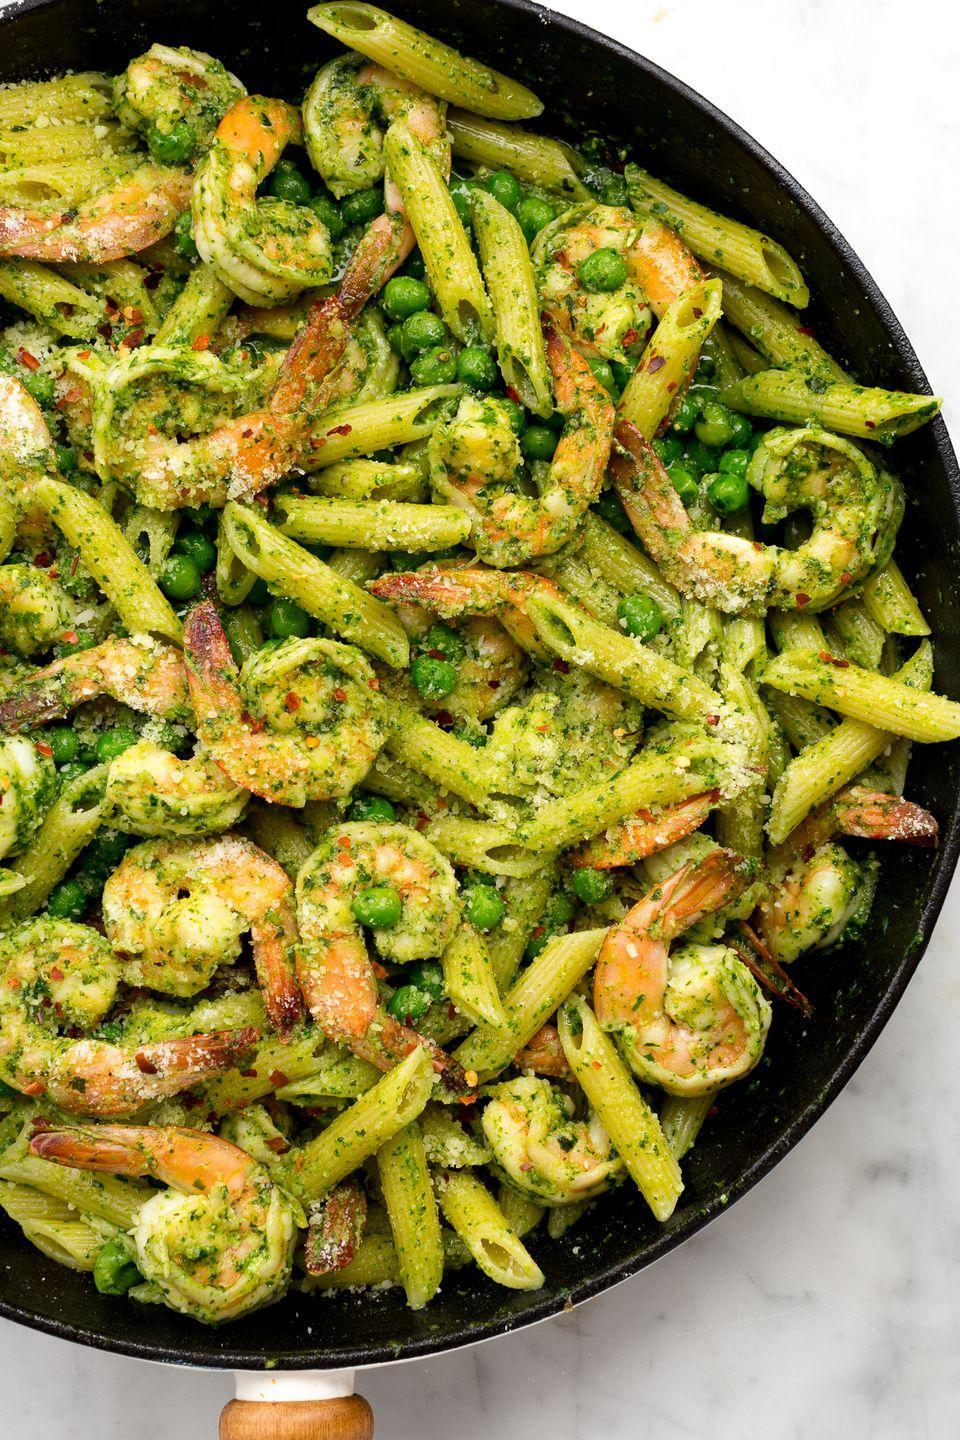 """<p>Pesto nuts will love this fresh spring combo of spinach, basil, and sweet peas. </p><p>Get the recipe from <a href=""""https://www.delish.com/cooking/recipe-ideas/recipes/a46530/spinach-pesto-penne-with-shrimp-and-peas-recipe/"""" rel=""""nofollow noopener"""" target=""""_blank"""" data-ylk=""""slk:Delish"""" class=""""link rapid-noclick-resp"""">Delish</a>.</p>"""